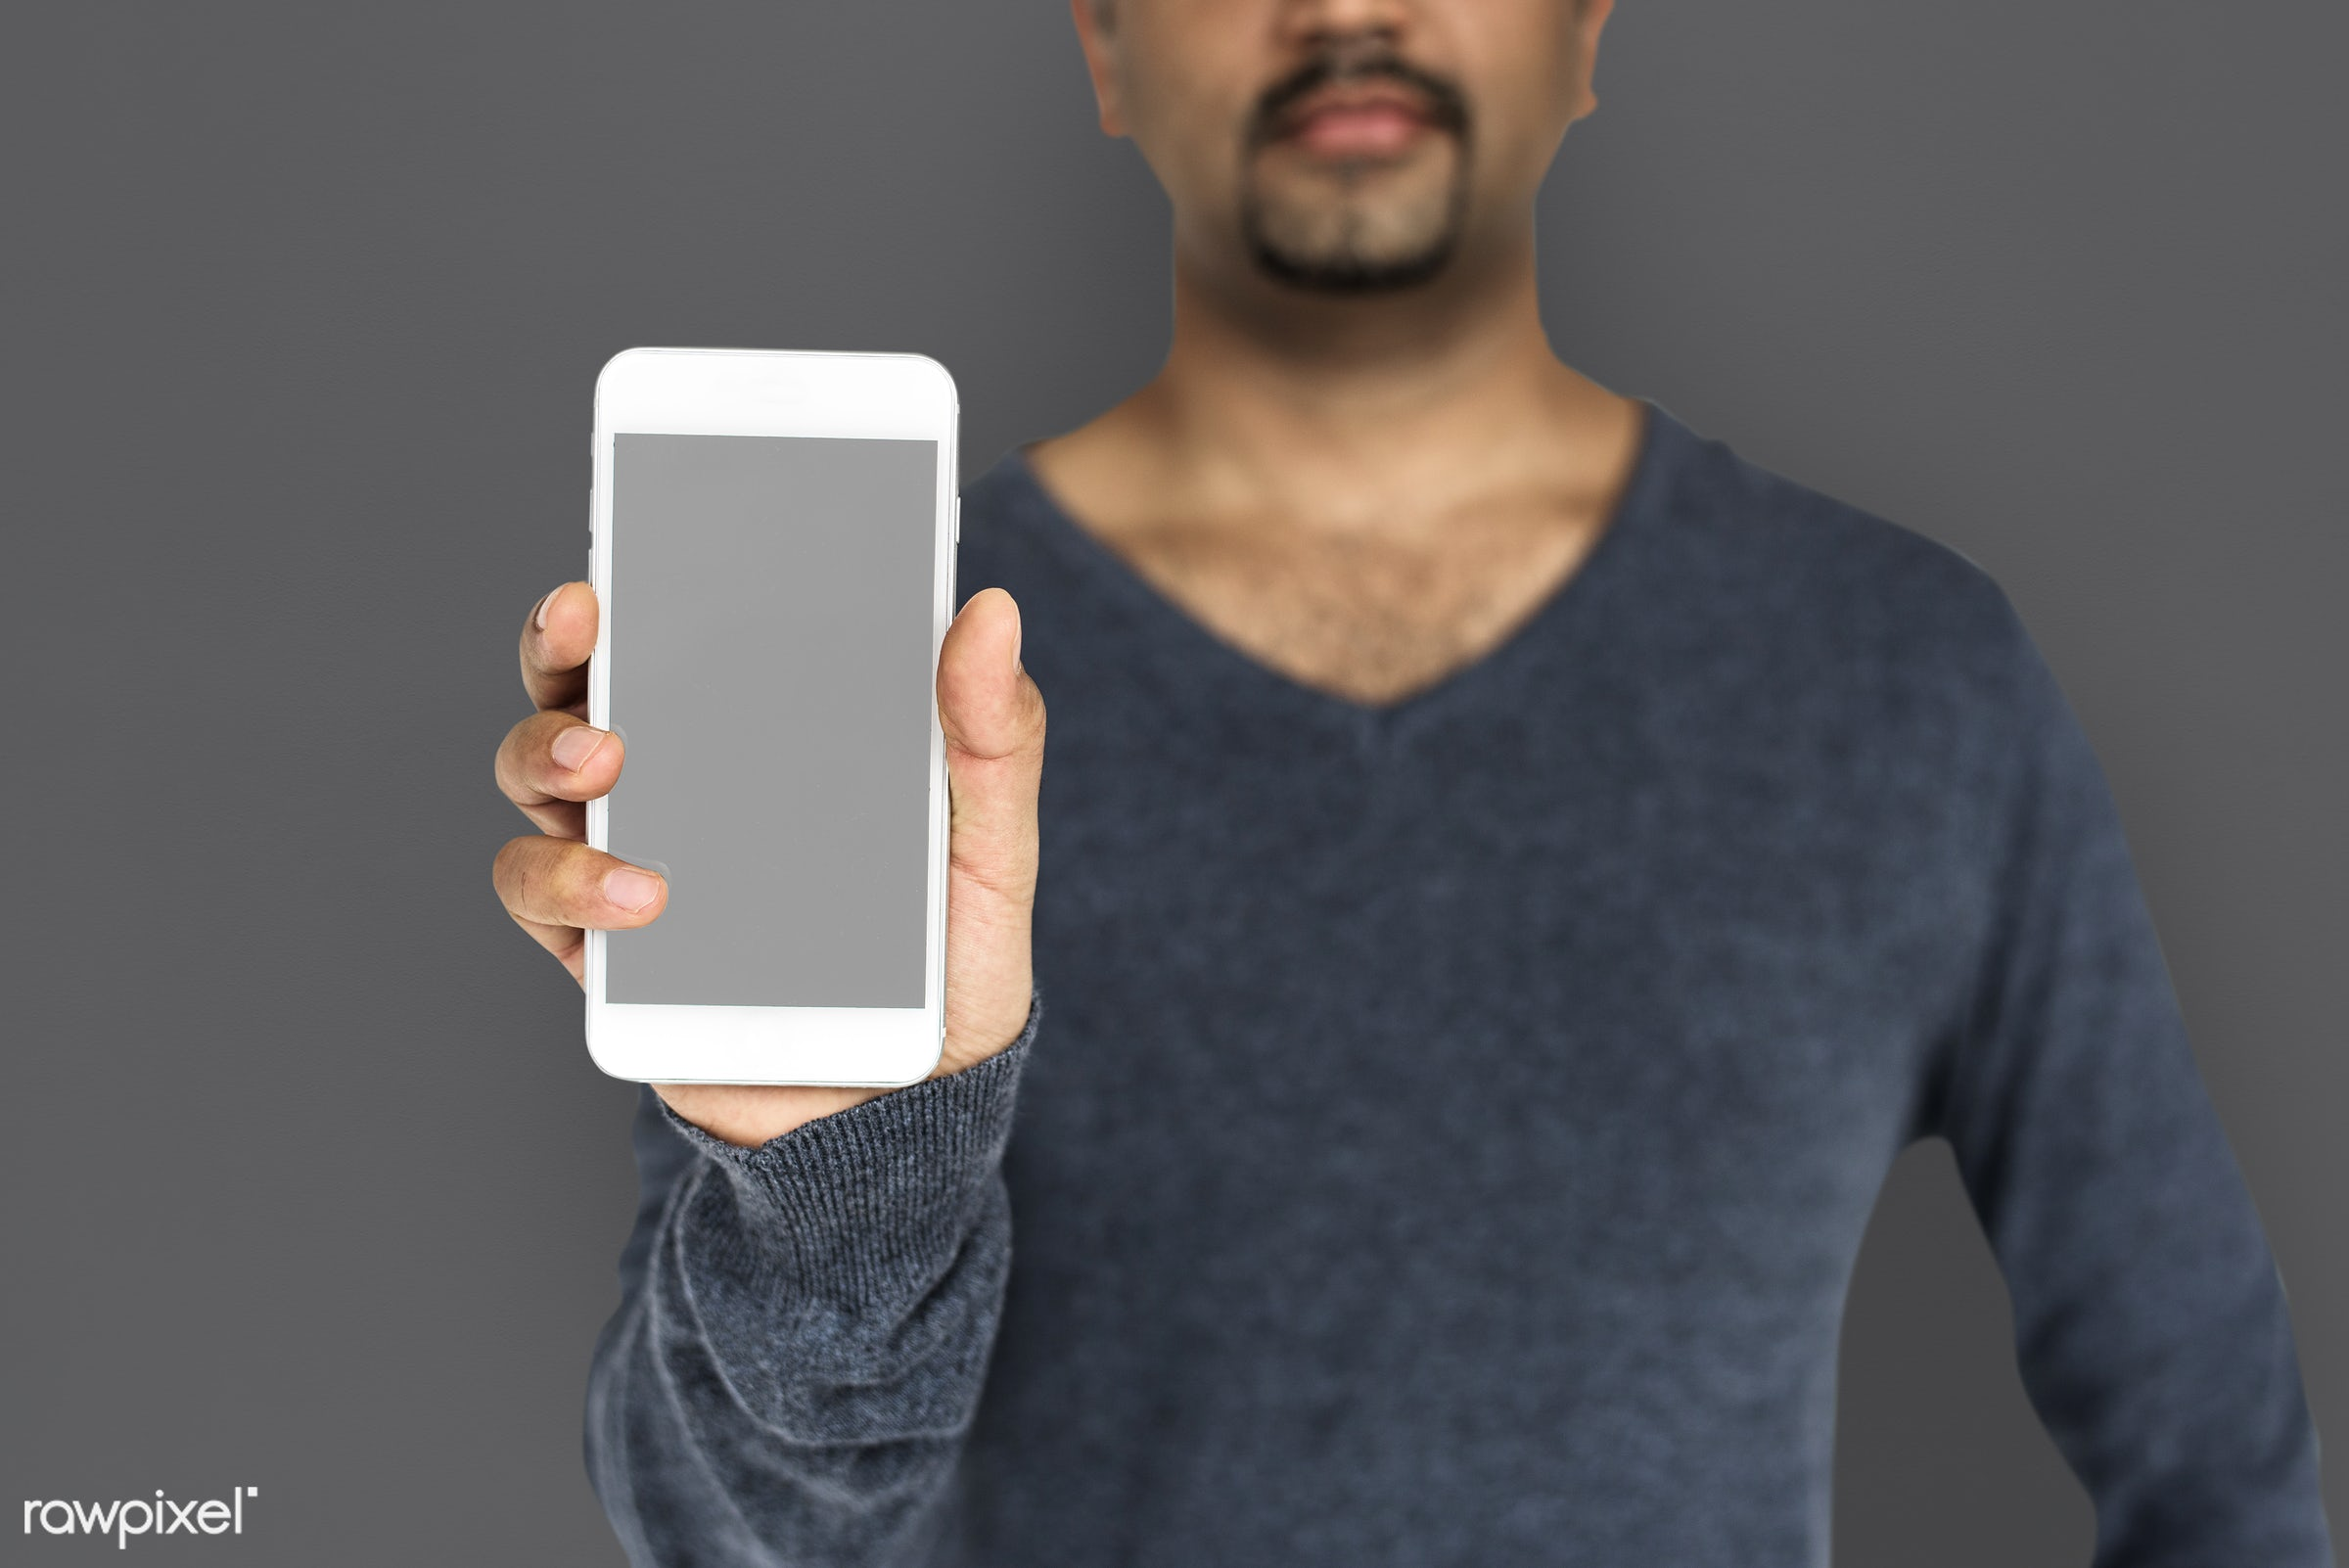 studio, expression, phone, person, technology, portable, poker face, holding, object, people, network, focused, mobile phone...